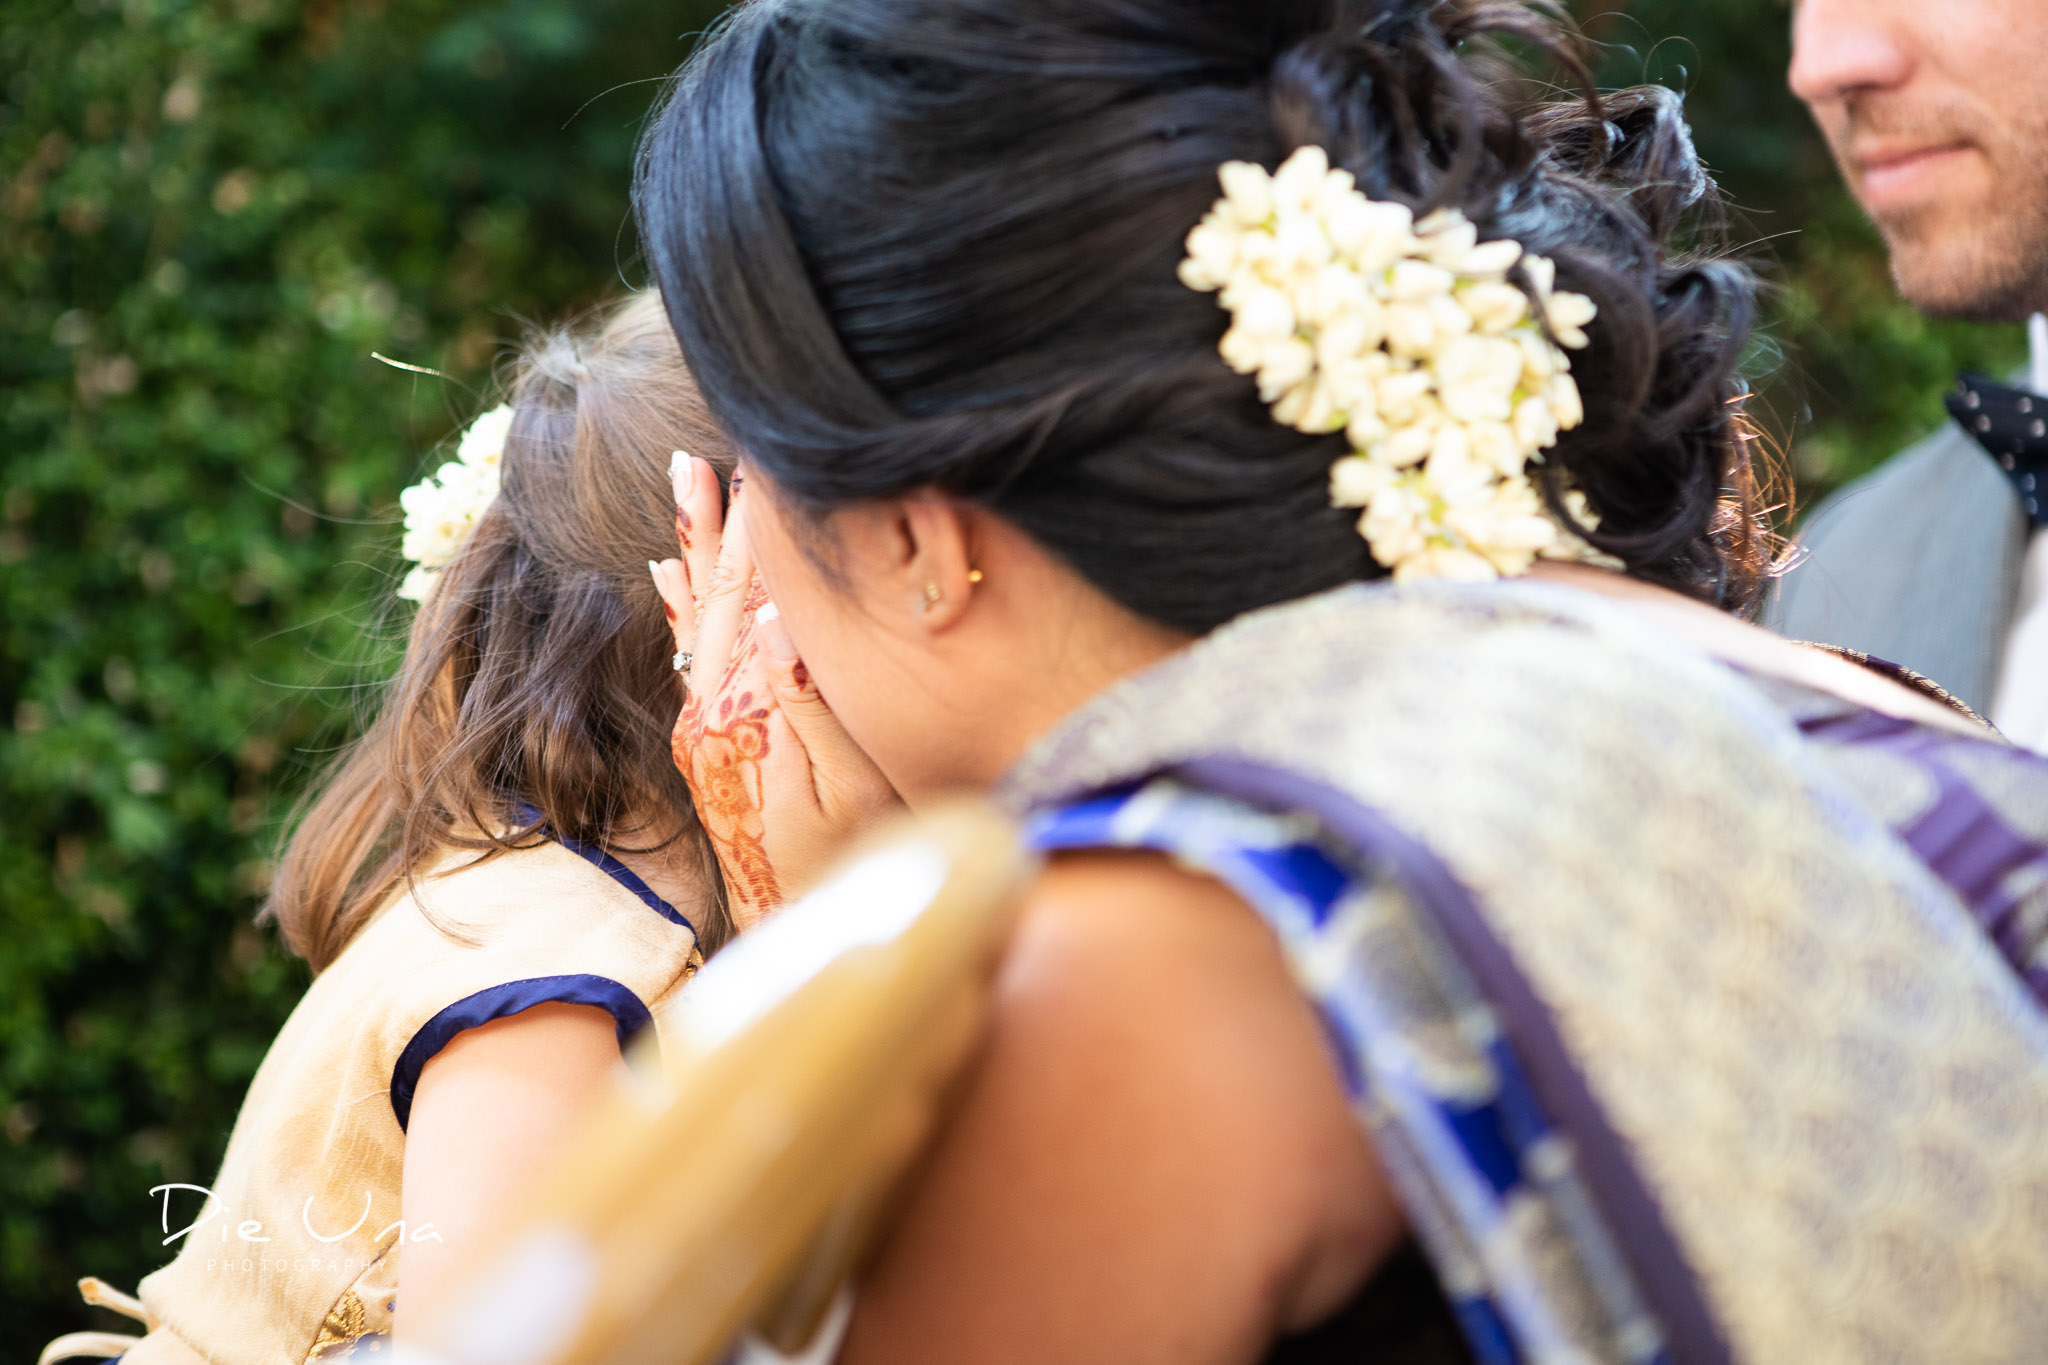 mom whispering to young duaghter during wedding ceremony.jpg